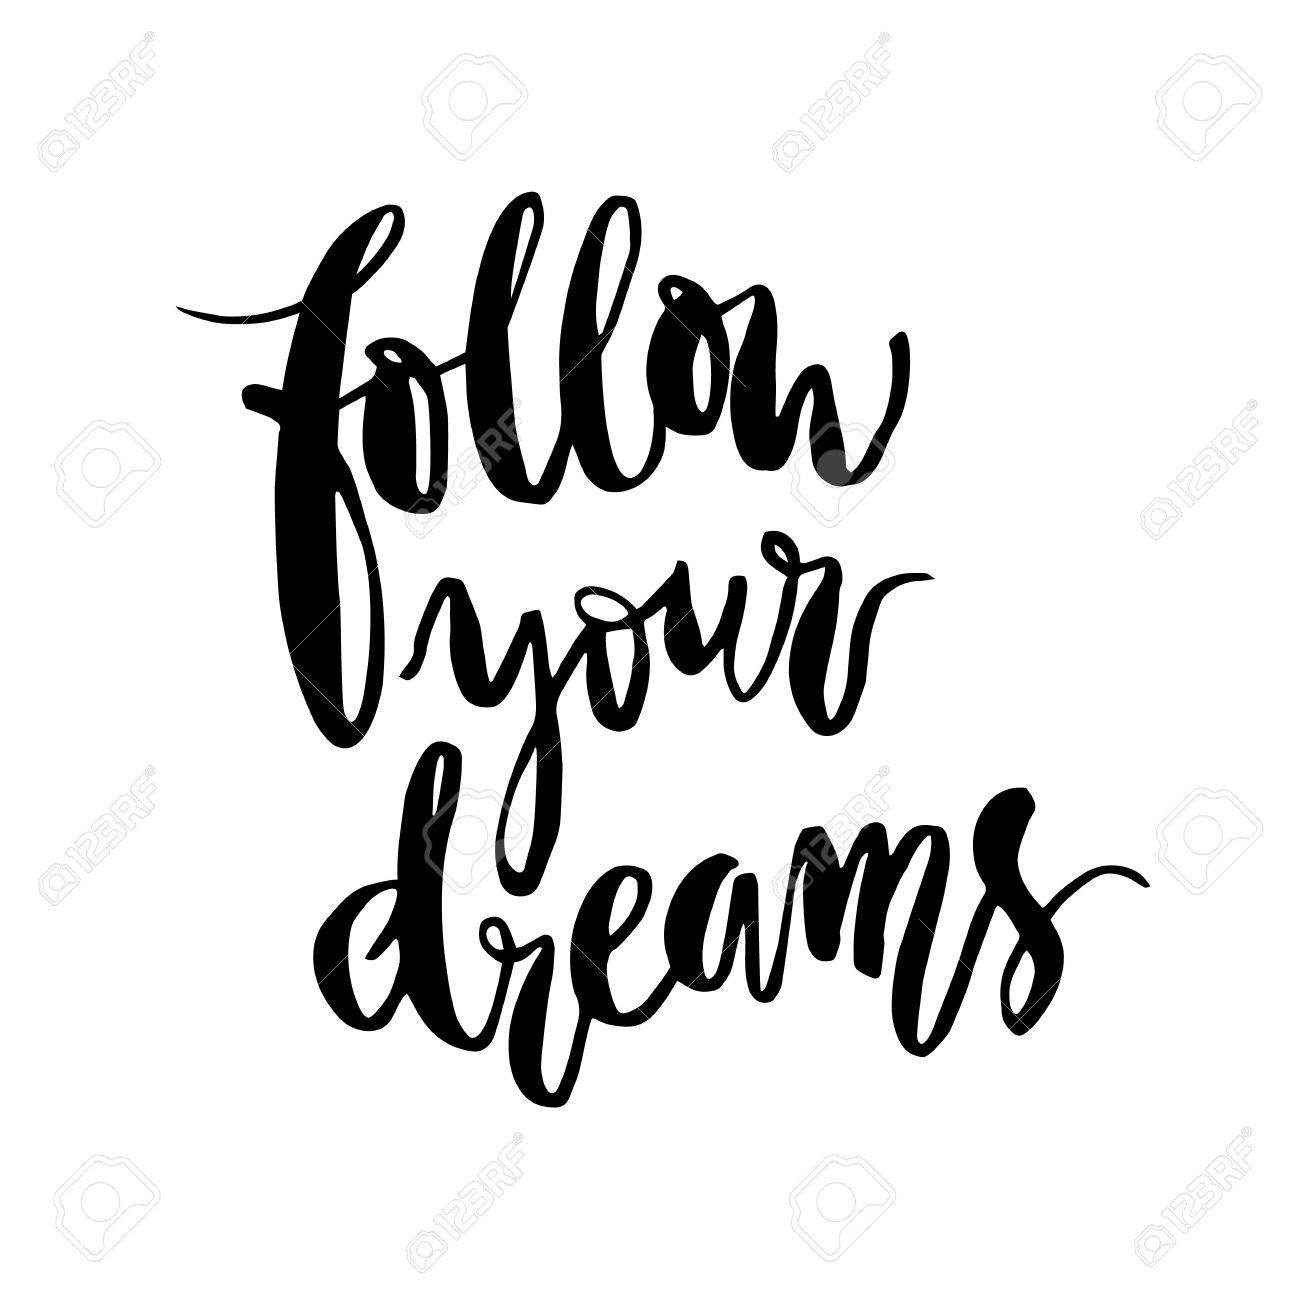 Inspirational Phrase Follow Your Dreams Modern Brush Calligraphy Royalty Free Cliparts Vectors And Stock Illustration Image 55824185